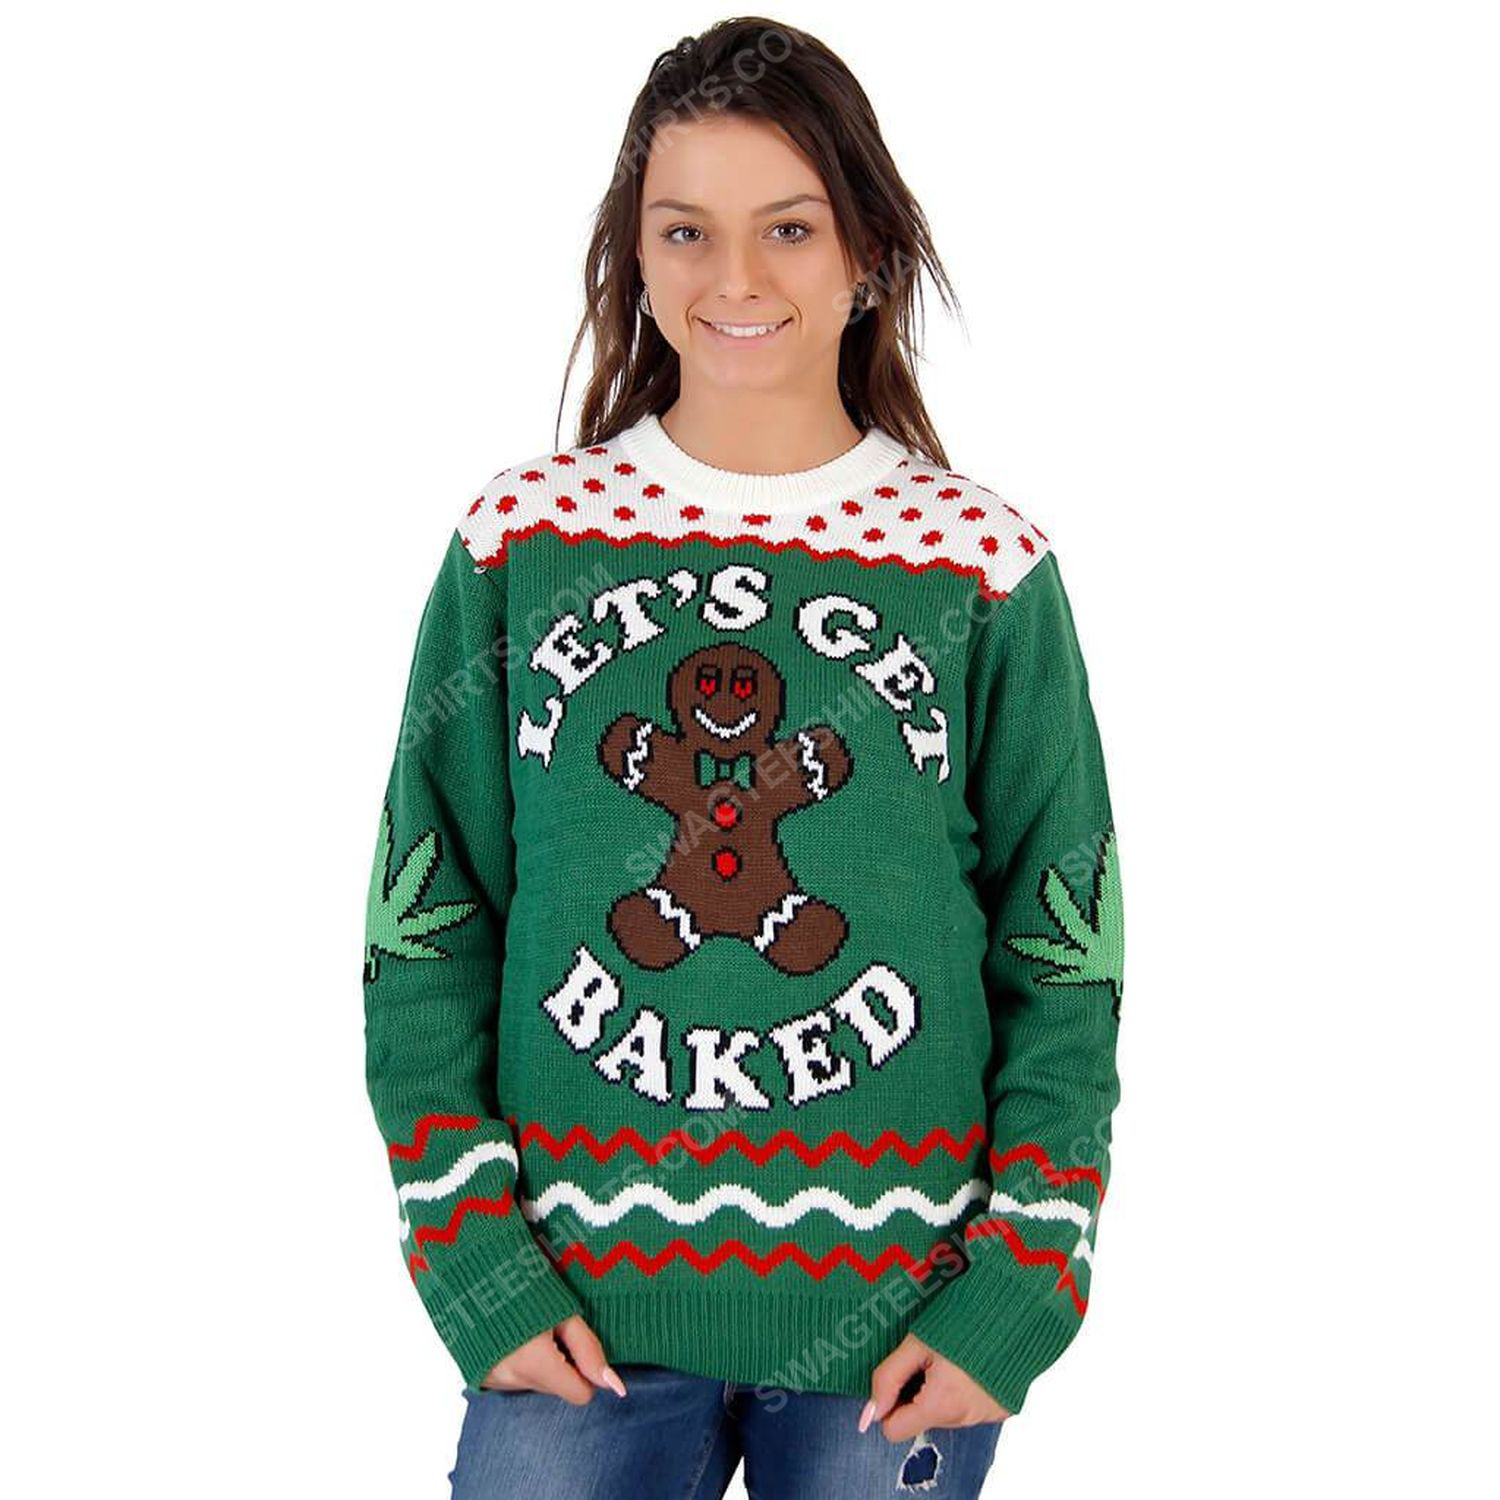 Let's get baked happy gingerbread ugly christmas sweater 1